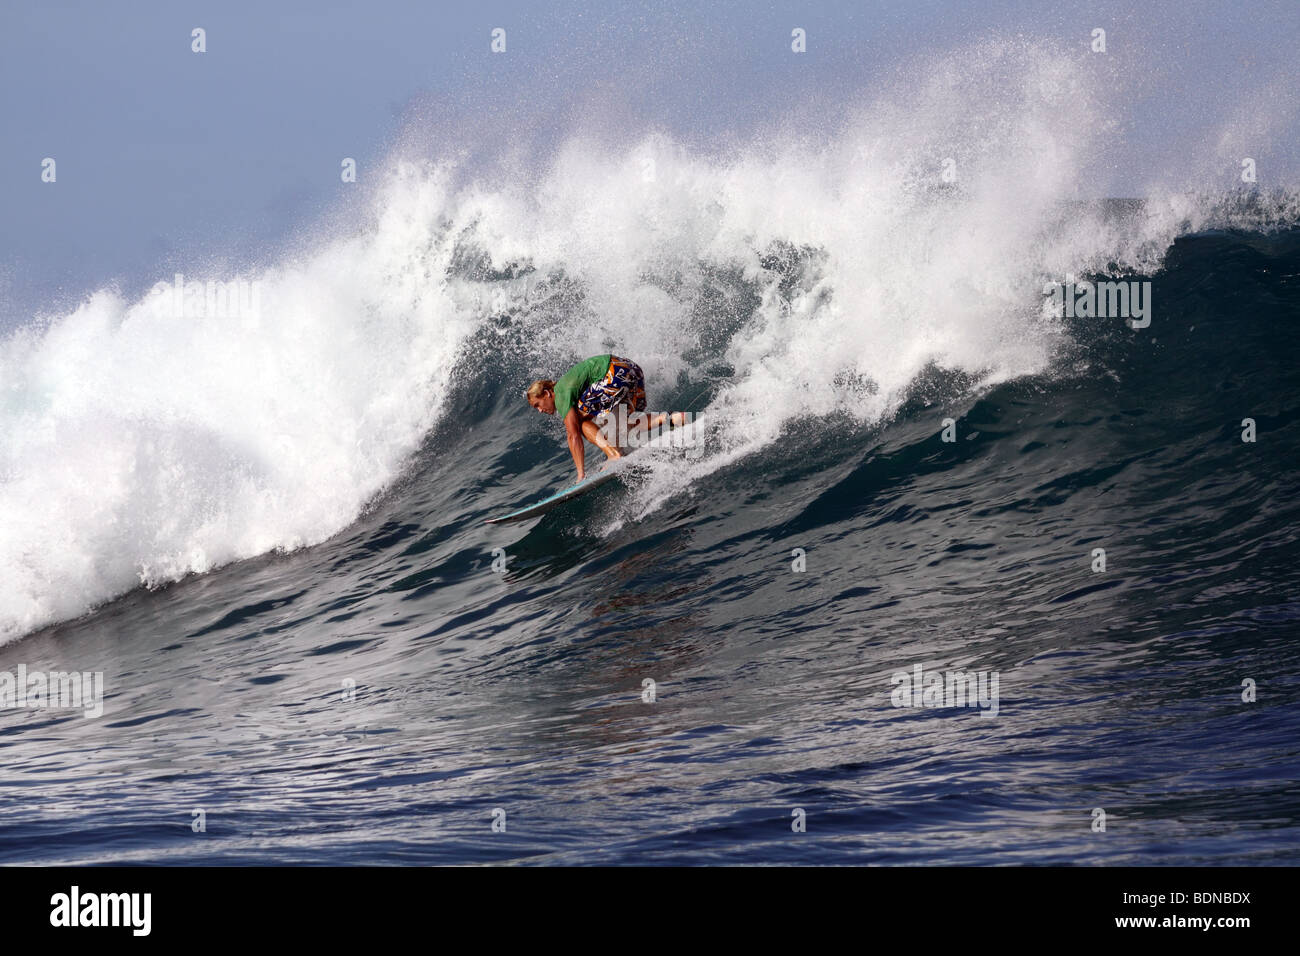 Surfer at Lance's Left in the Mentawai Islands, Sumatra, Indonesia - Stock Image